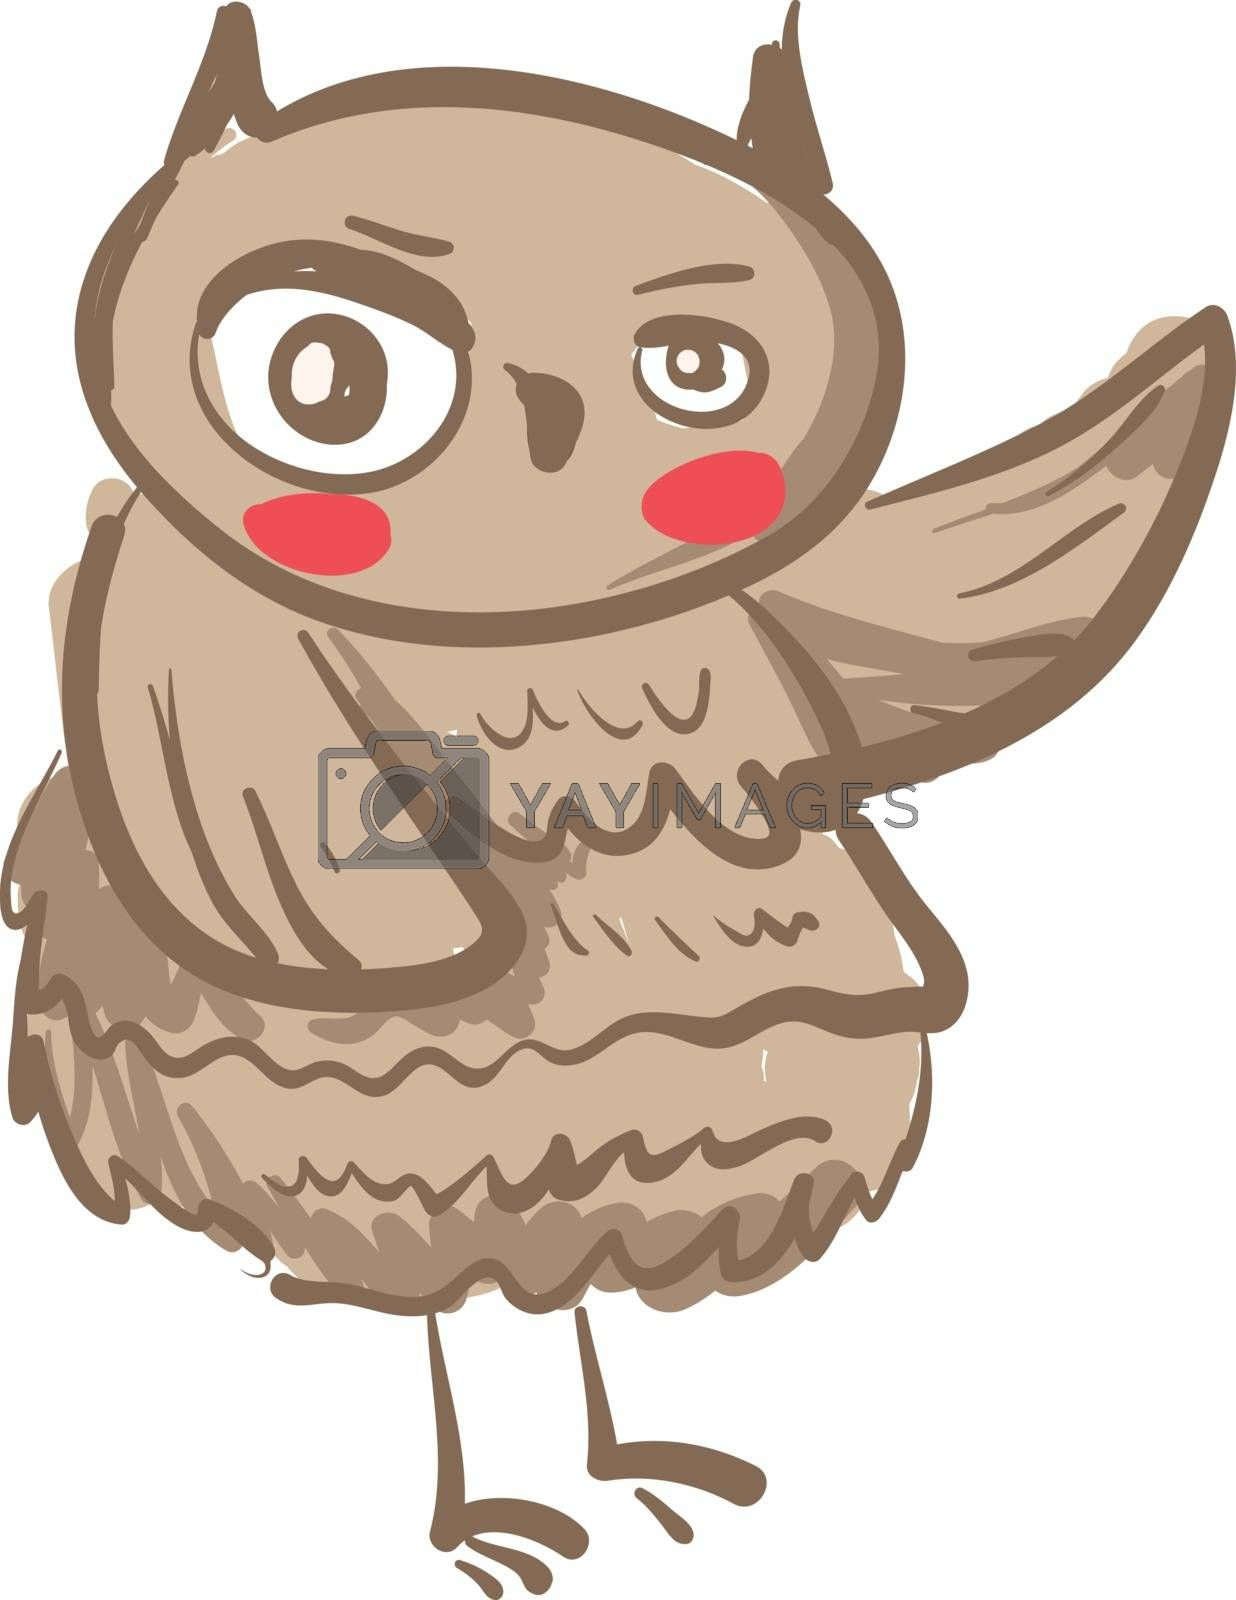 An image of an owl with uneven size of eyes waving his left hand vector color drawing or illustration